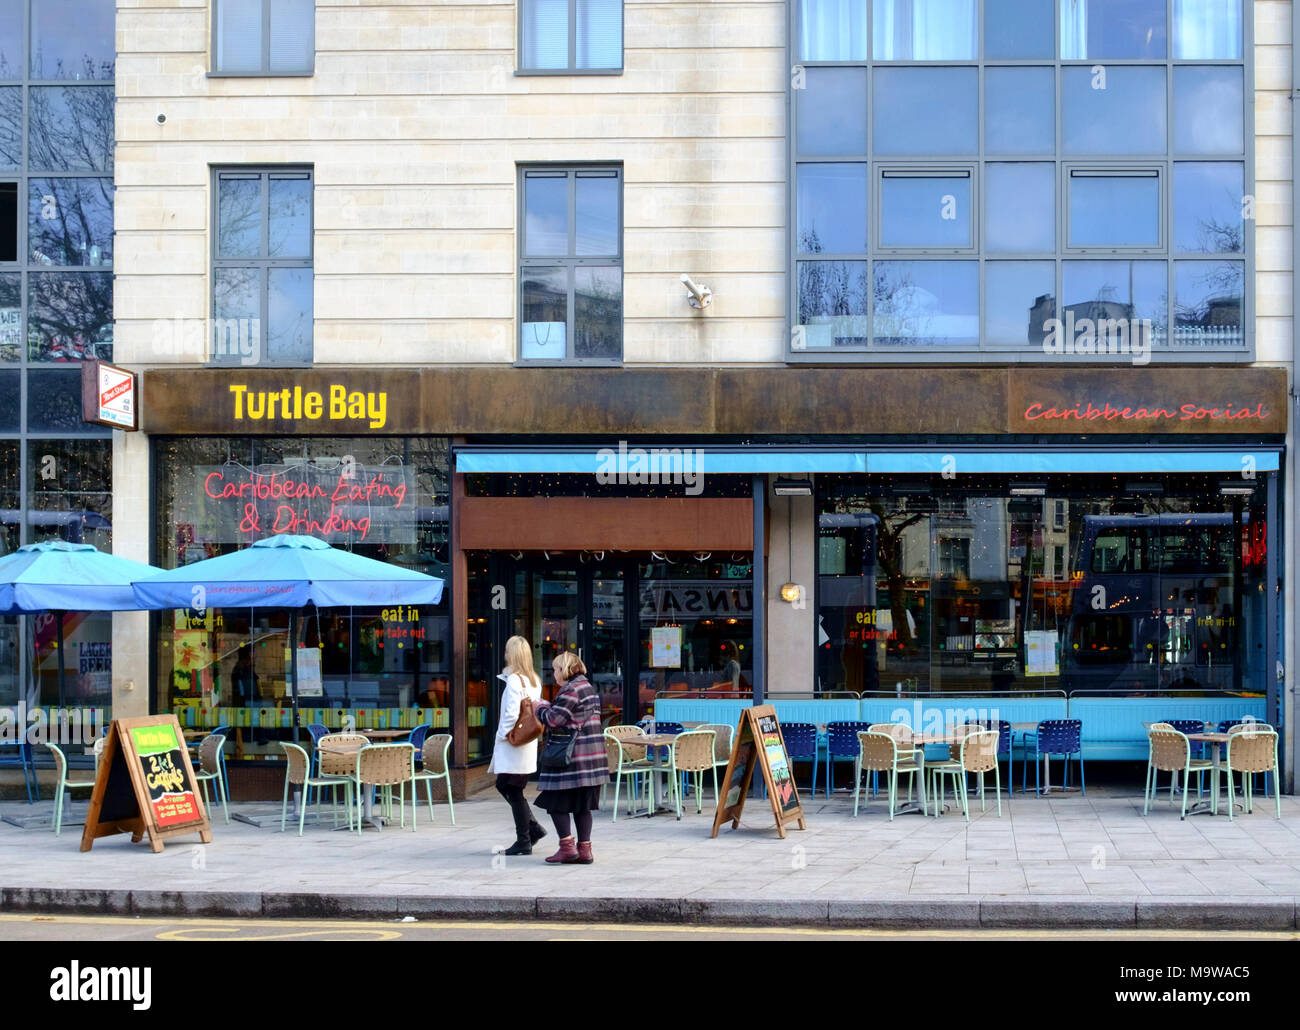 Turtle Bay Restaurant in Bristol City Center - Stock Image